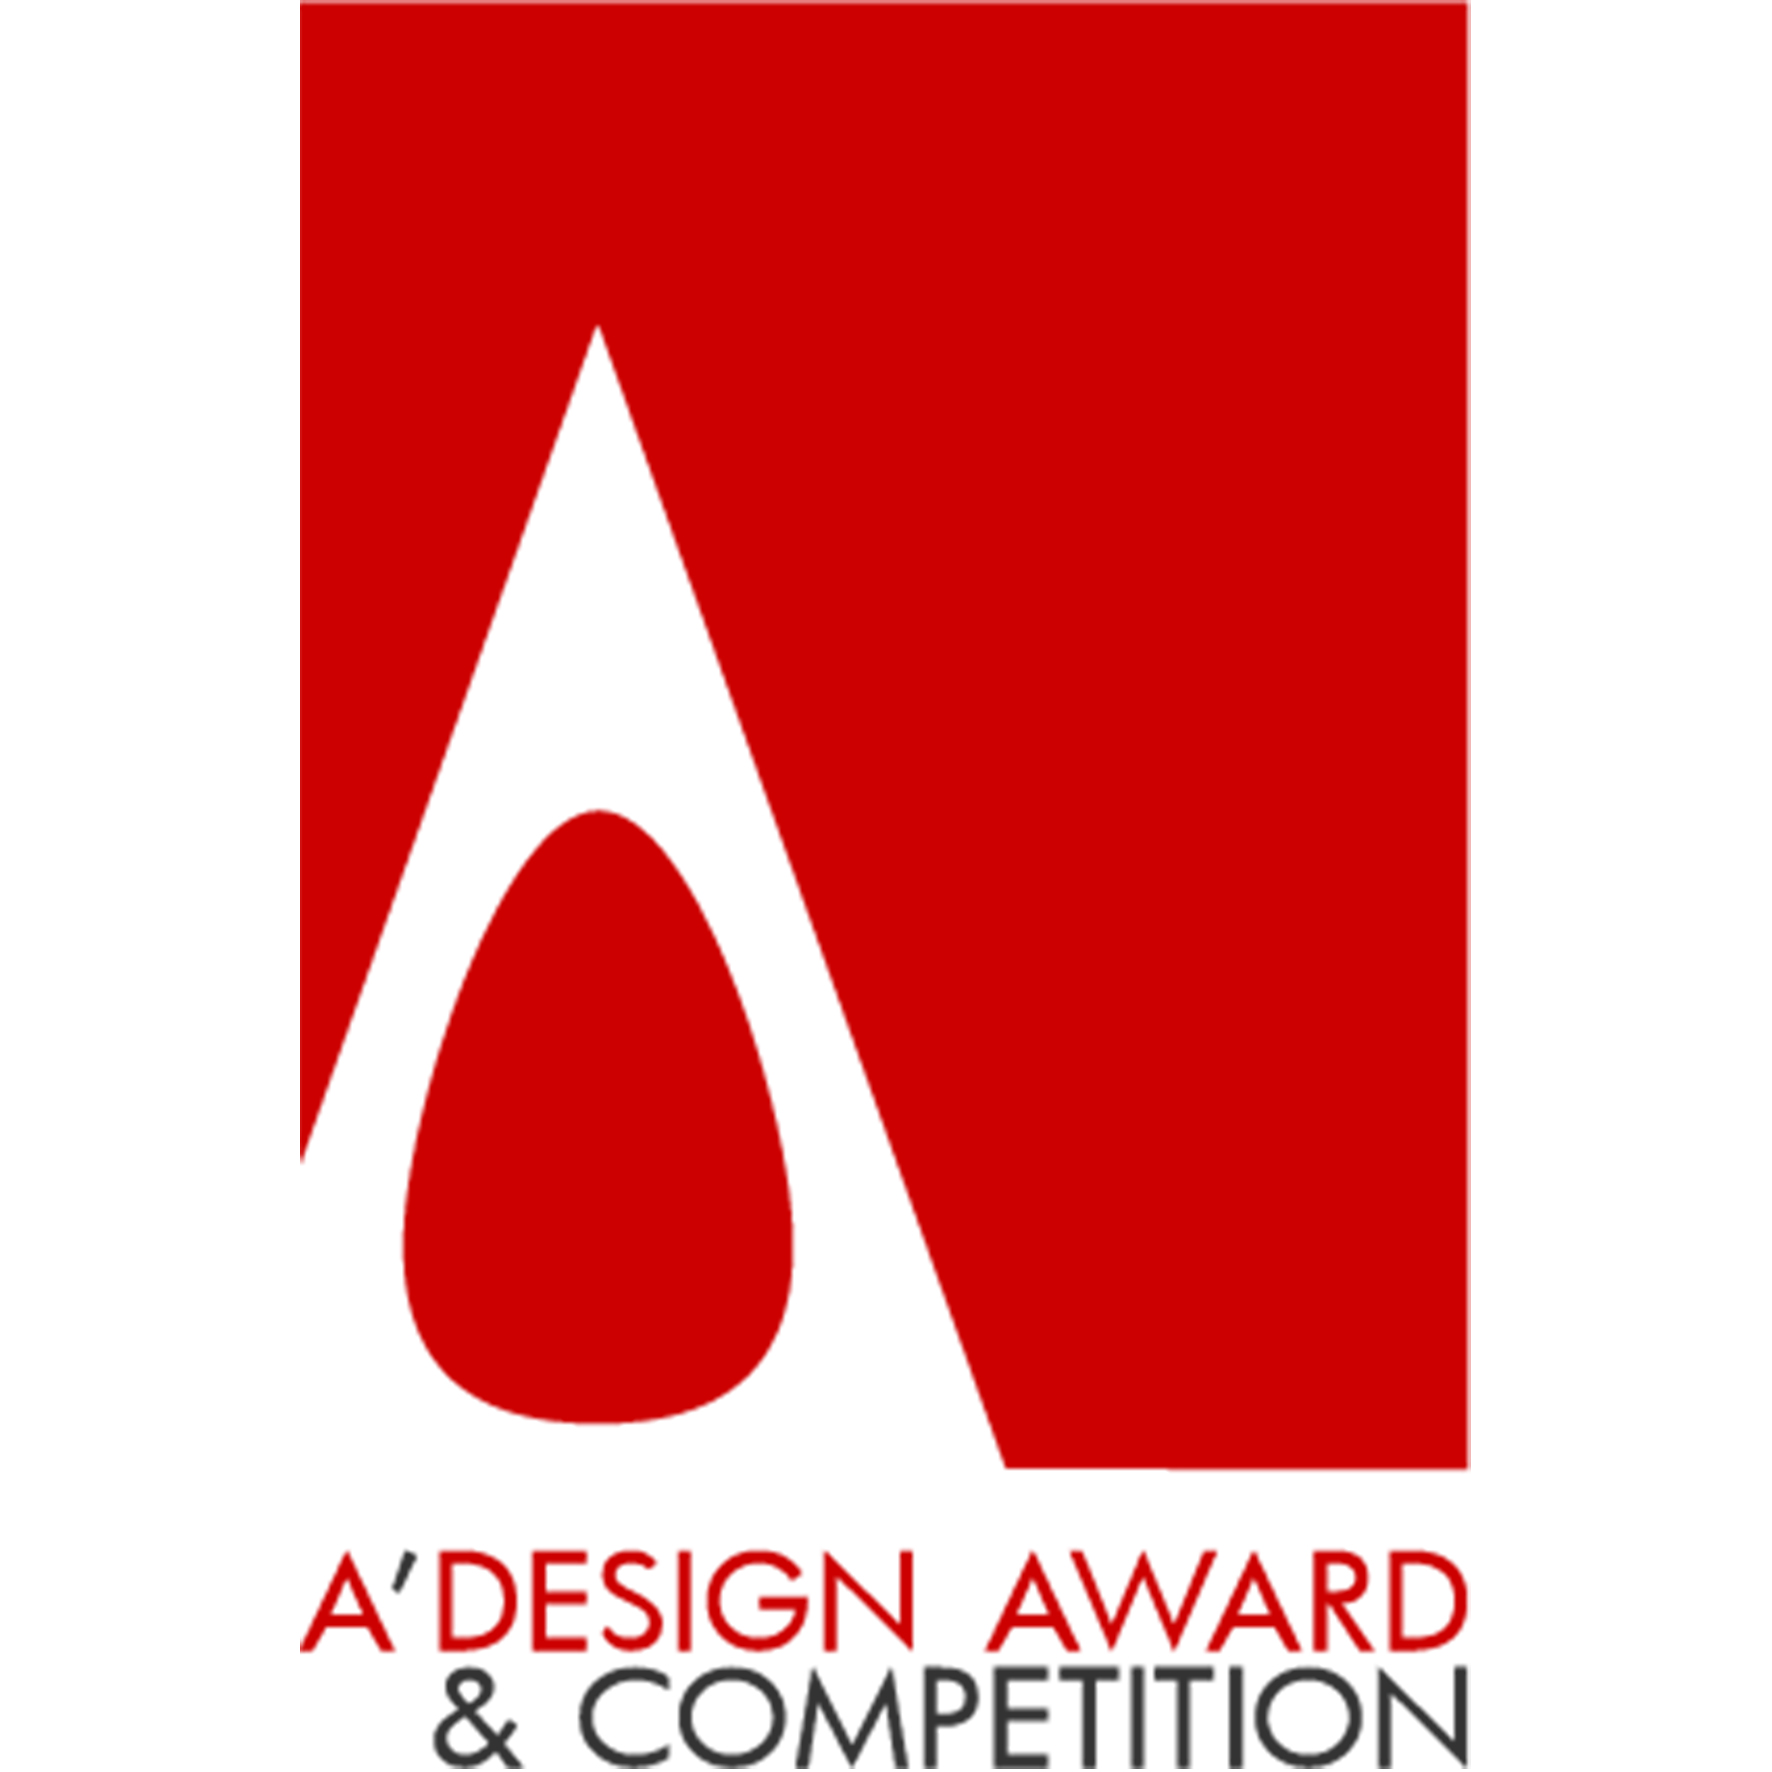 2015-2016 A' Design Award – Silver in Residential Apartment (住宅设计银奖, 2015-2016年度A'设计大奖)